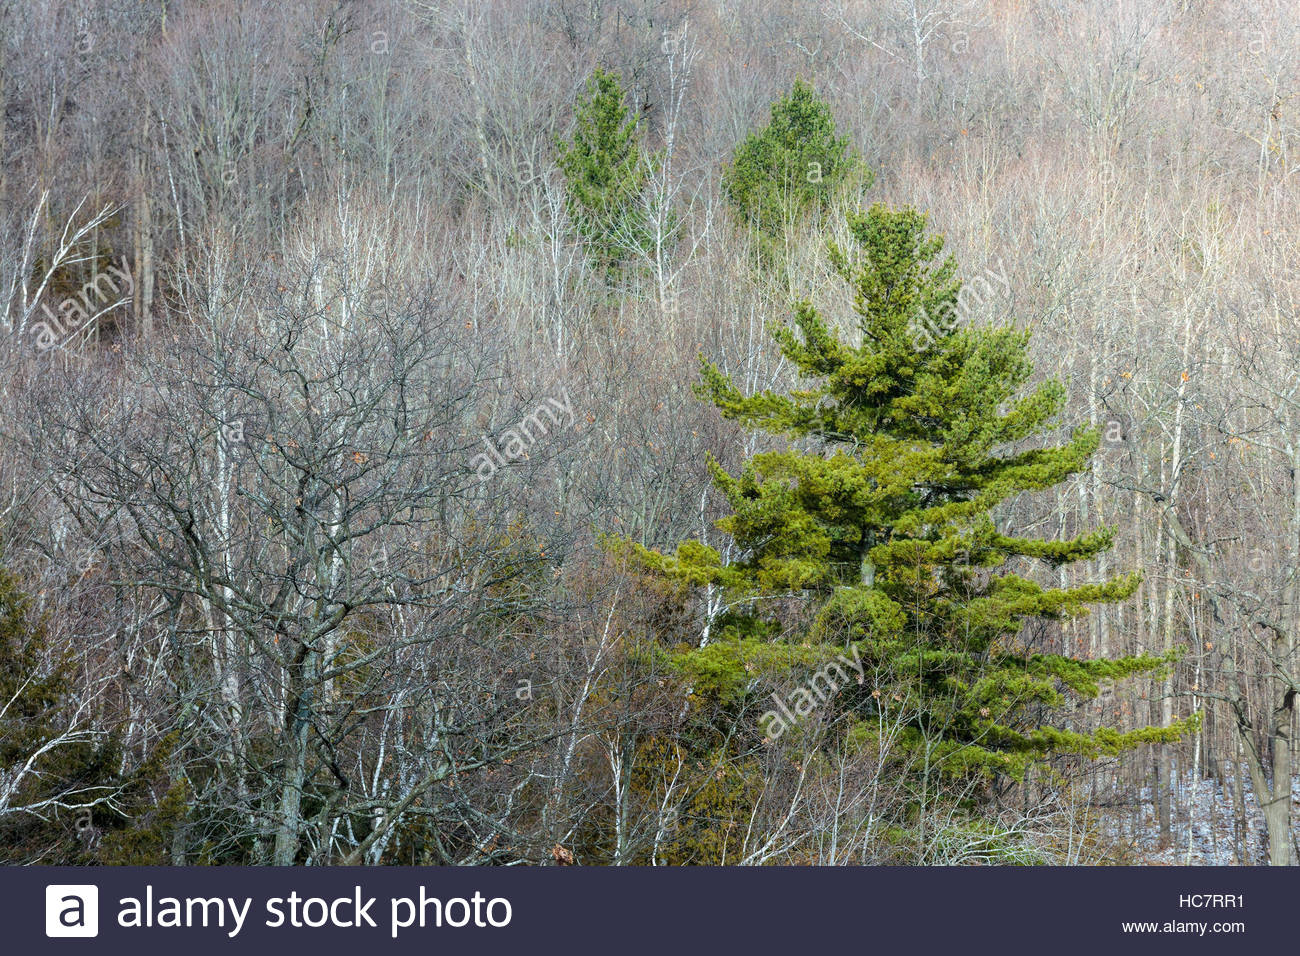 abscission tree deciduous trees drop leaves and evergreens retain needles in winter forest in Rouge National Urban - Stock Image